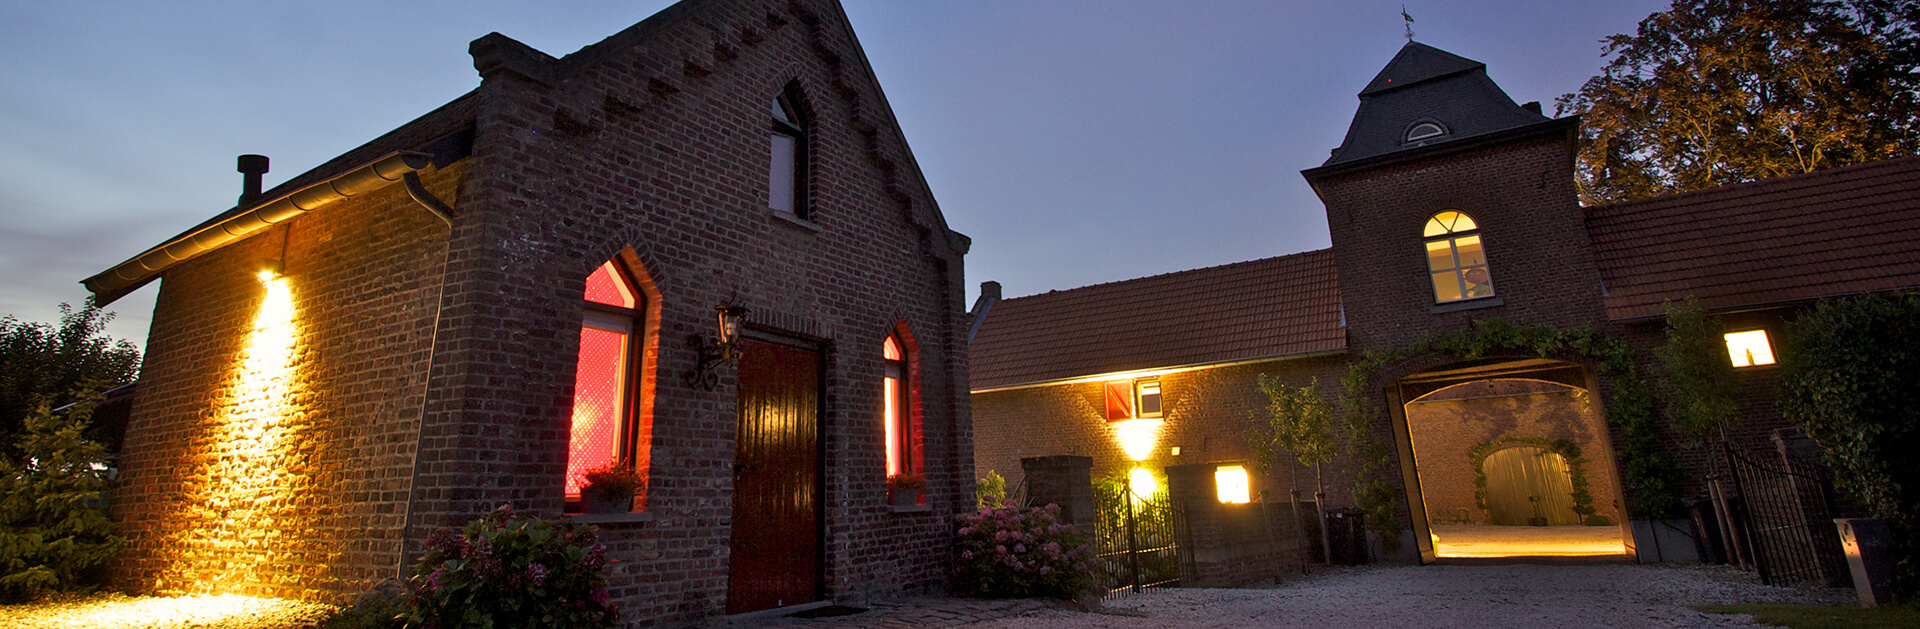 Huiskenshof and Bakhuis by night